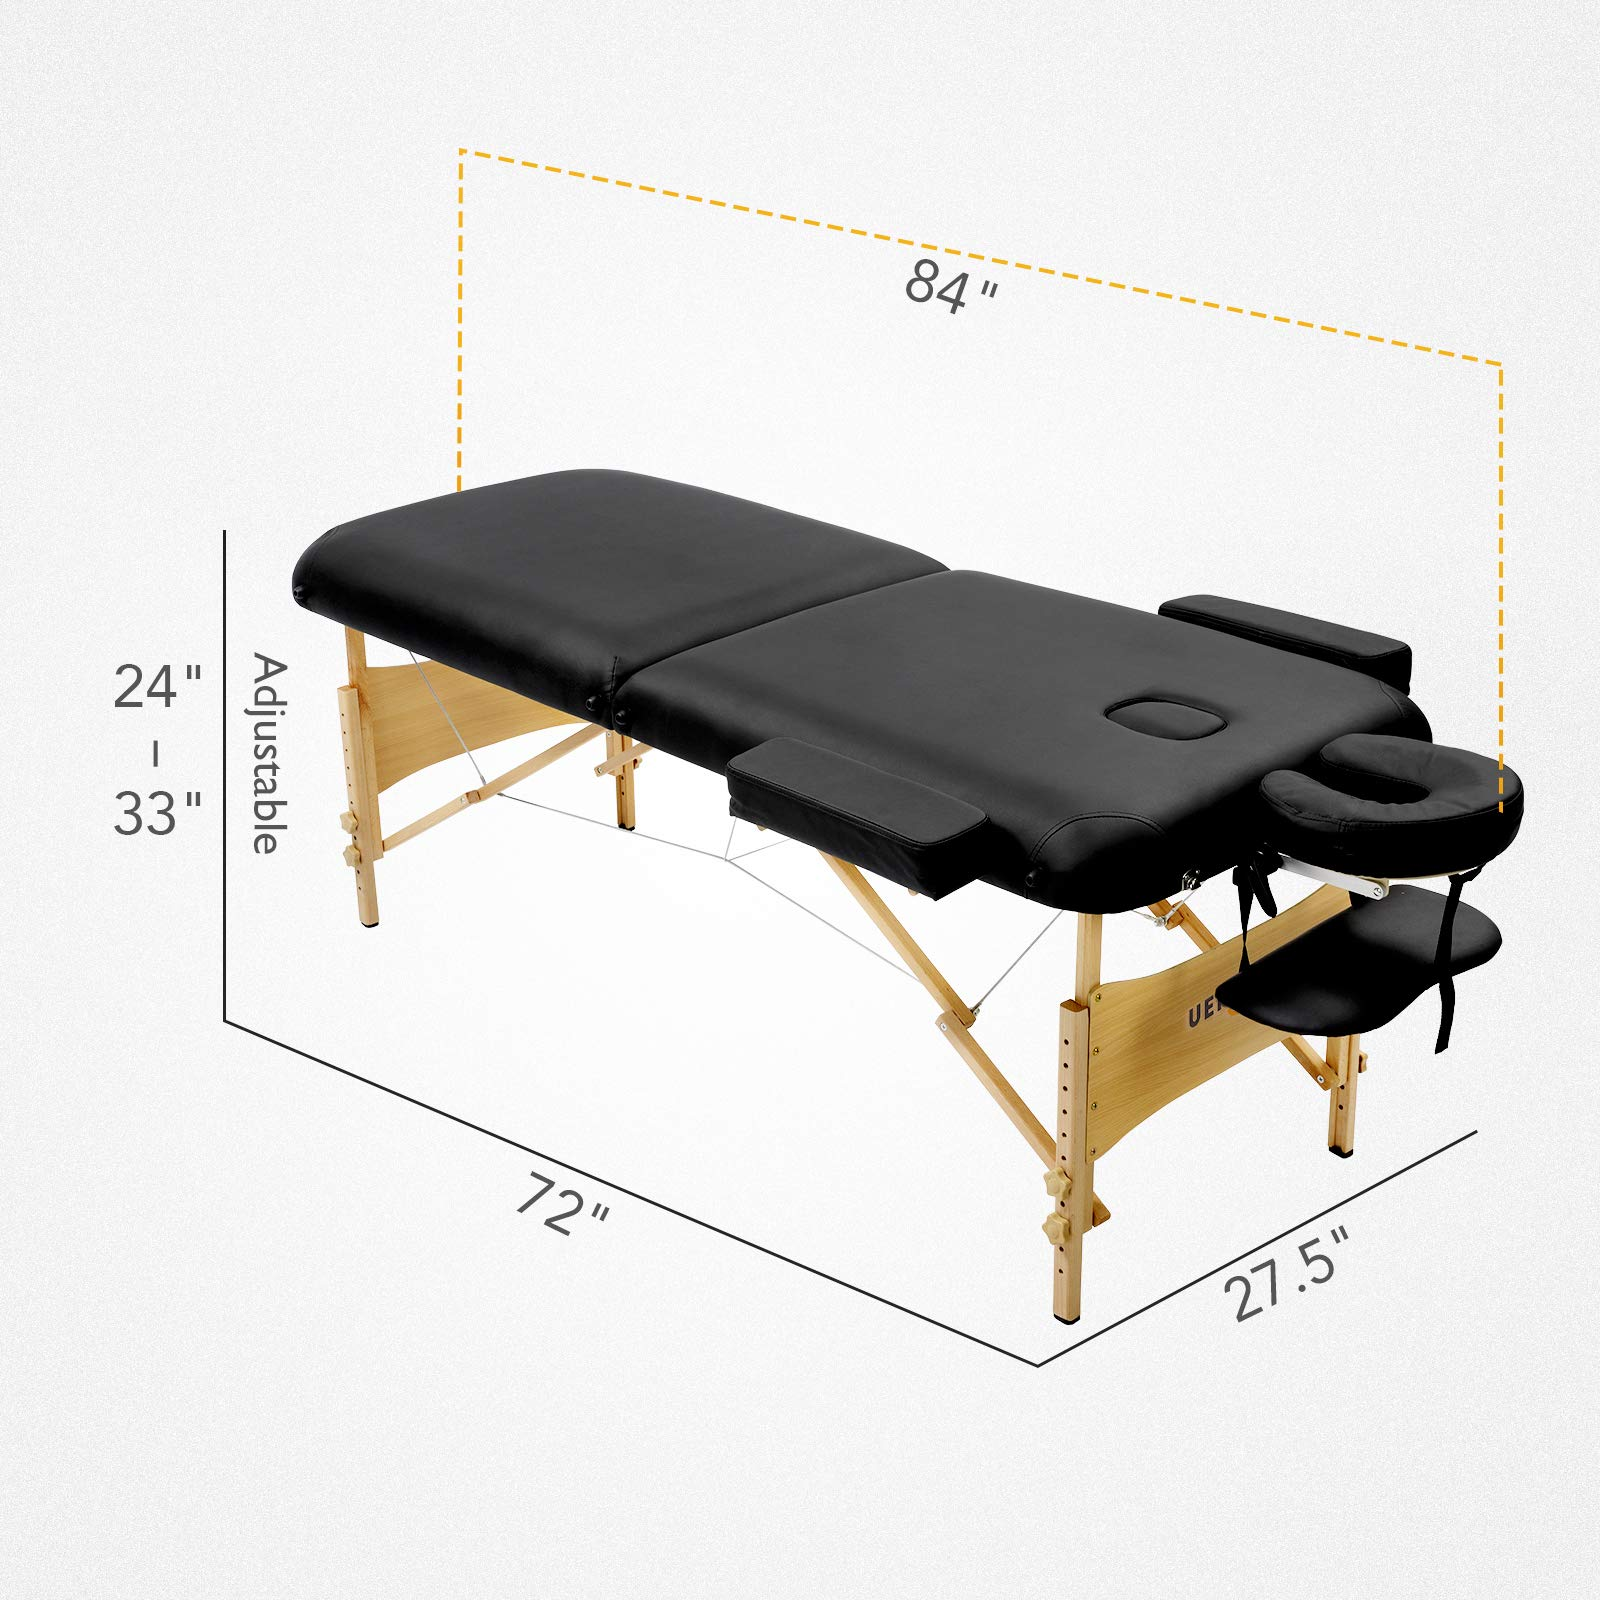 Uenjoy Massage Table 84'' Professional Folding Massage Bed Deluxe Model with Extra Width, Ultra-thick Sponge, PU Leather Surface & Additional Accessories, 2 Fold, Black by Uenjoy (Image #8)